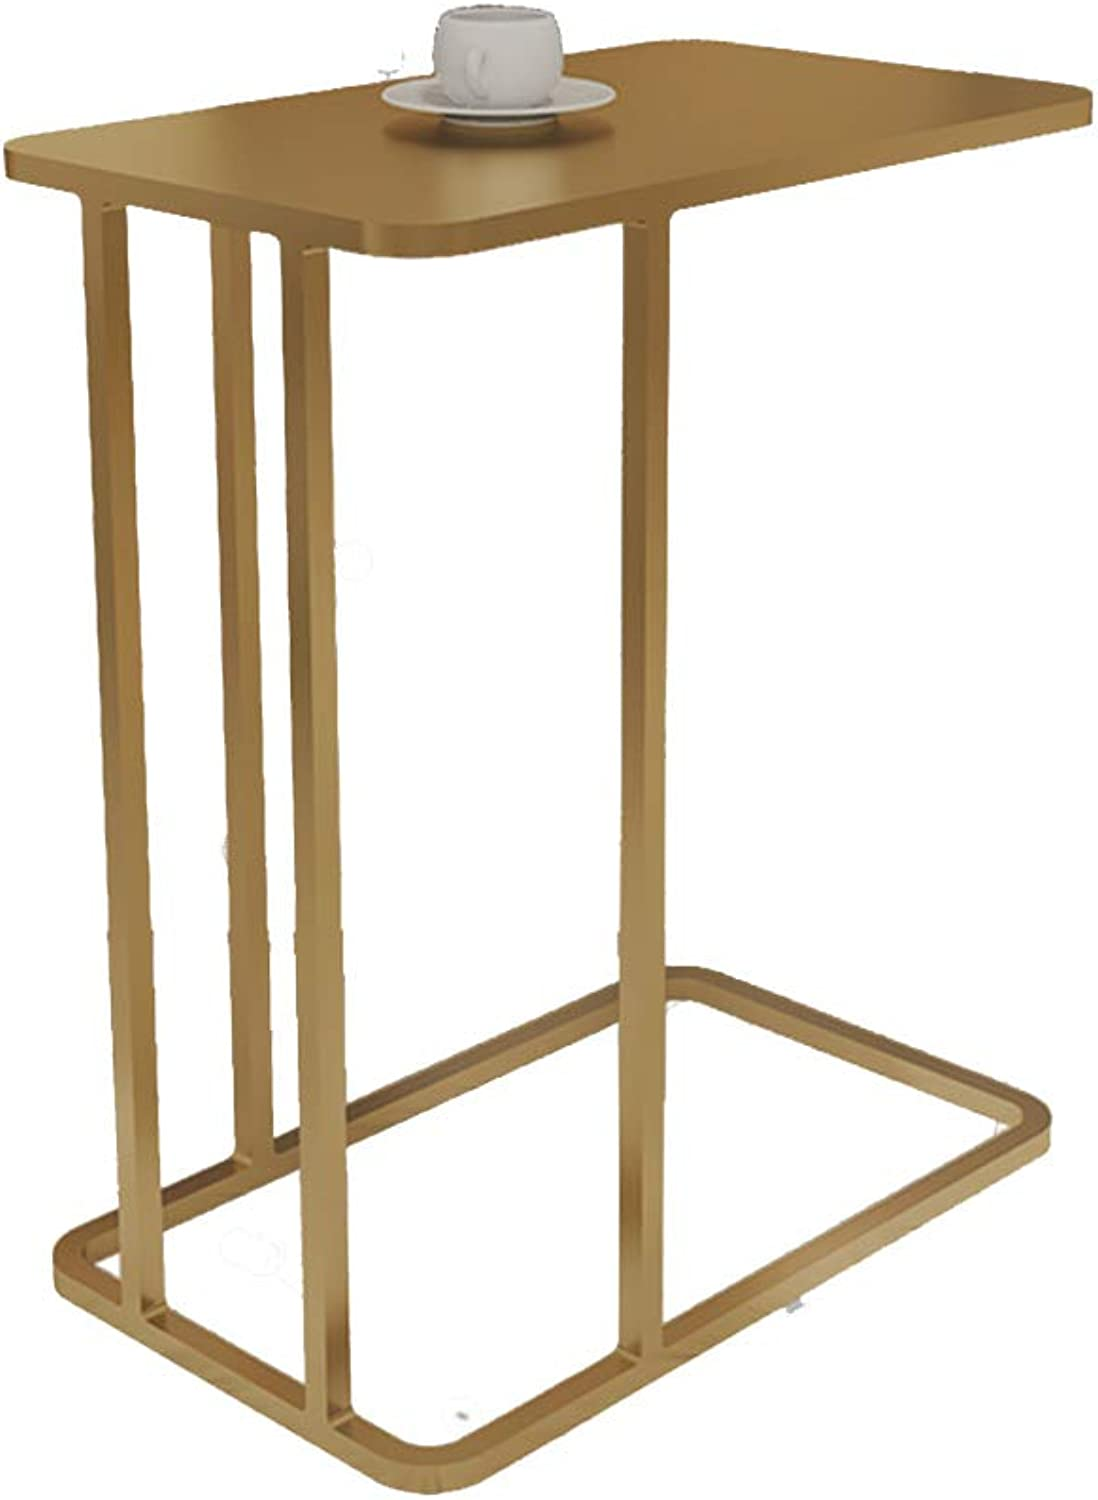 ZHIRONG gold Metal Material Sofa Side End Table C Shaped Space Saving Coffee Table Snack Storage Trolly Table Home Living Room Office